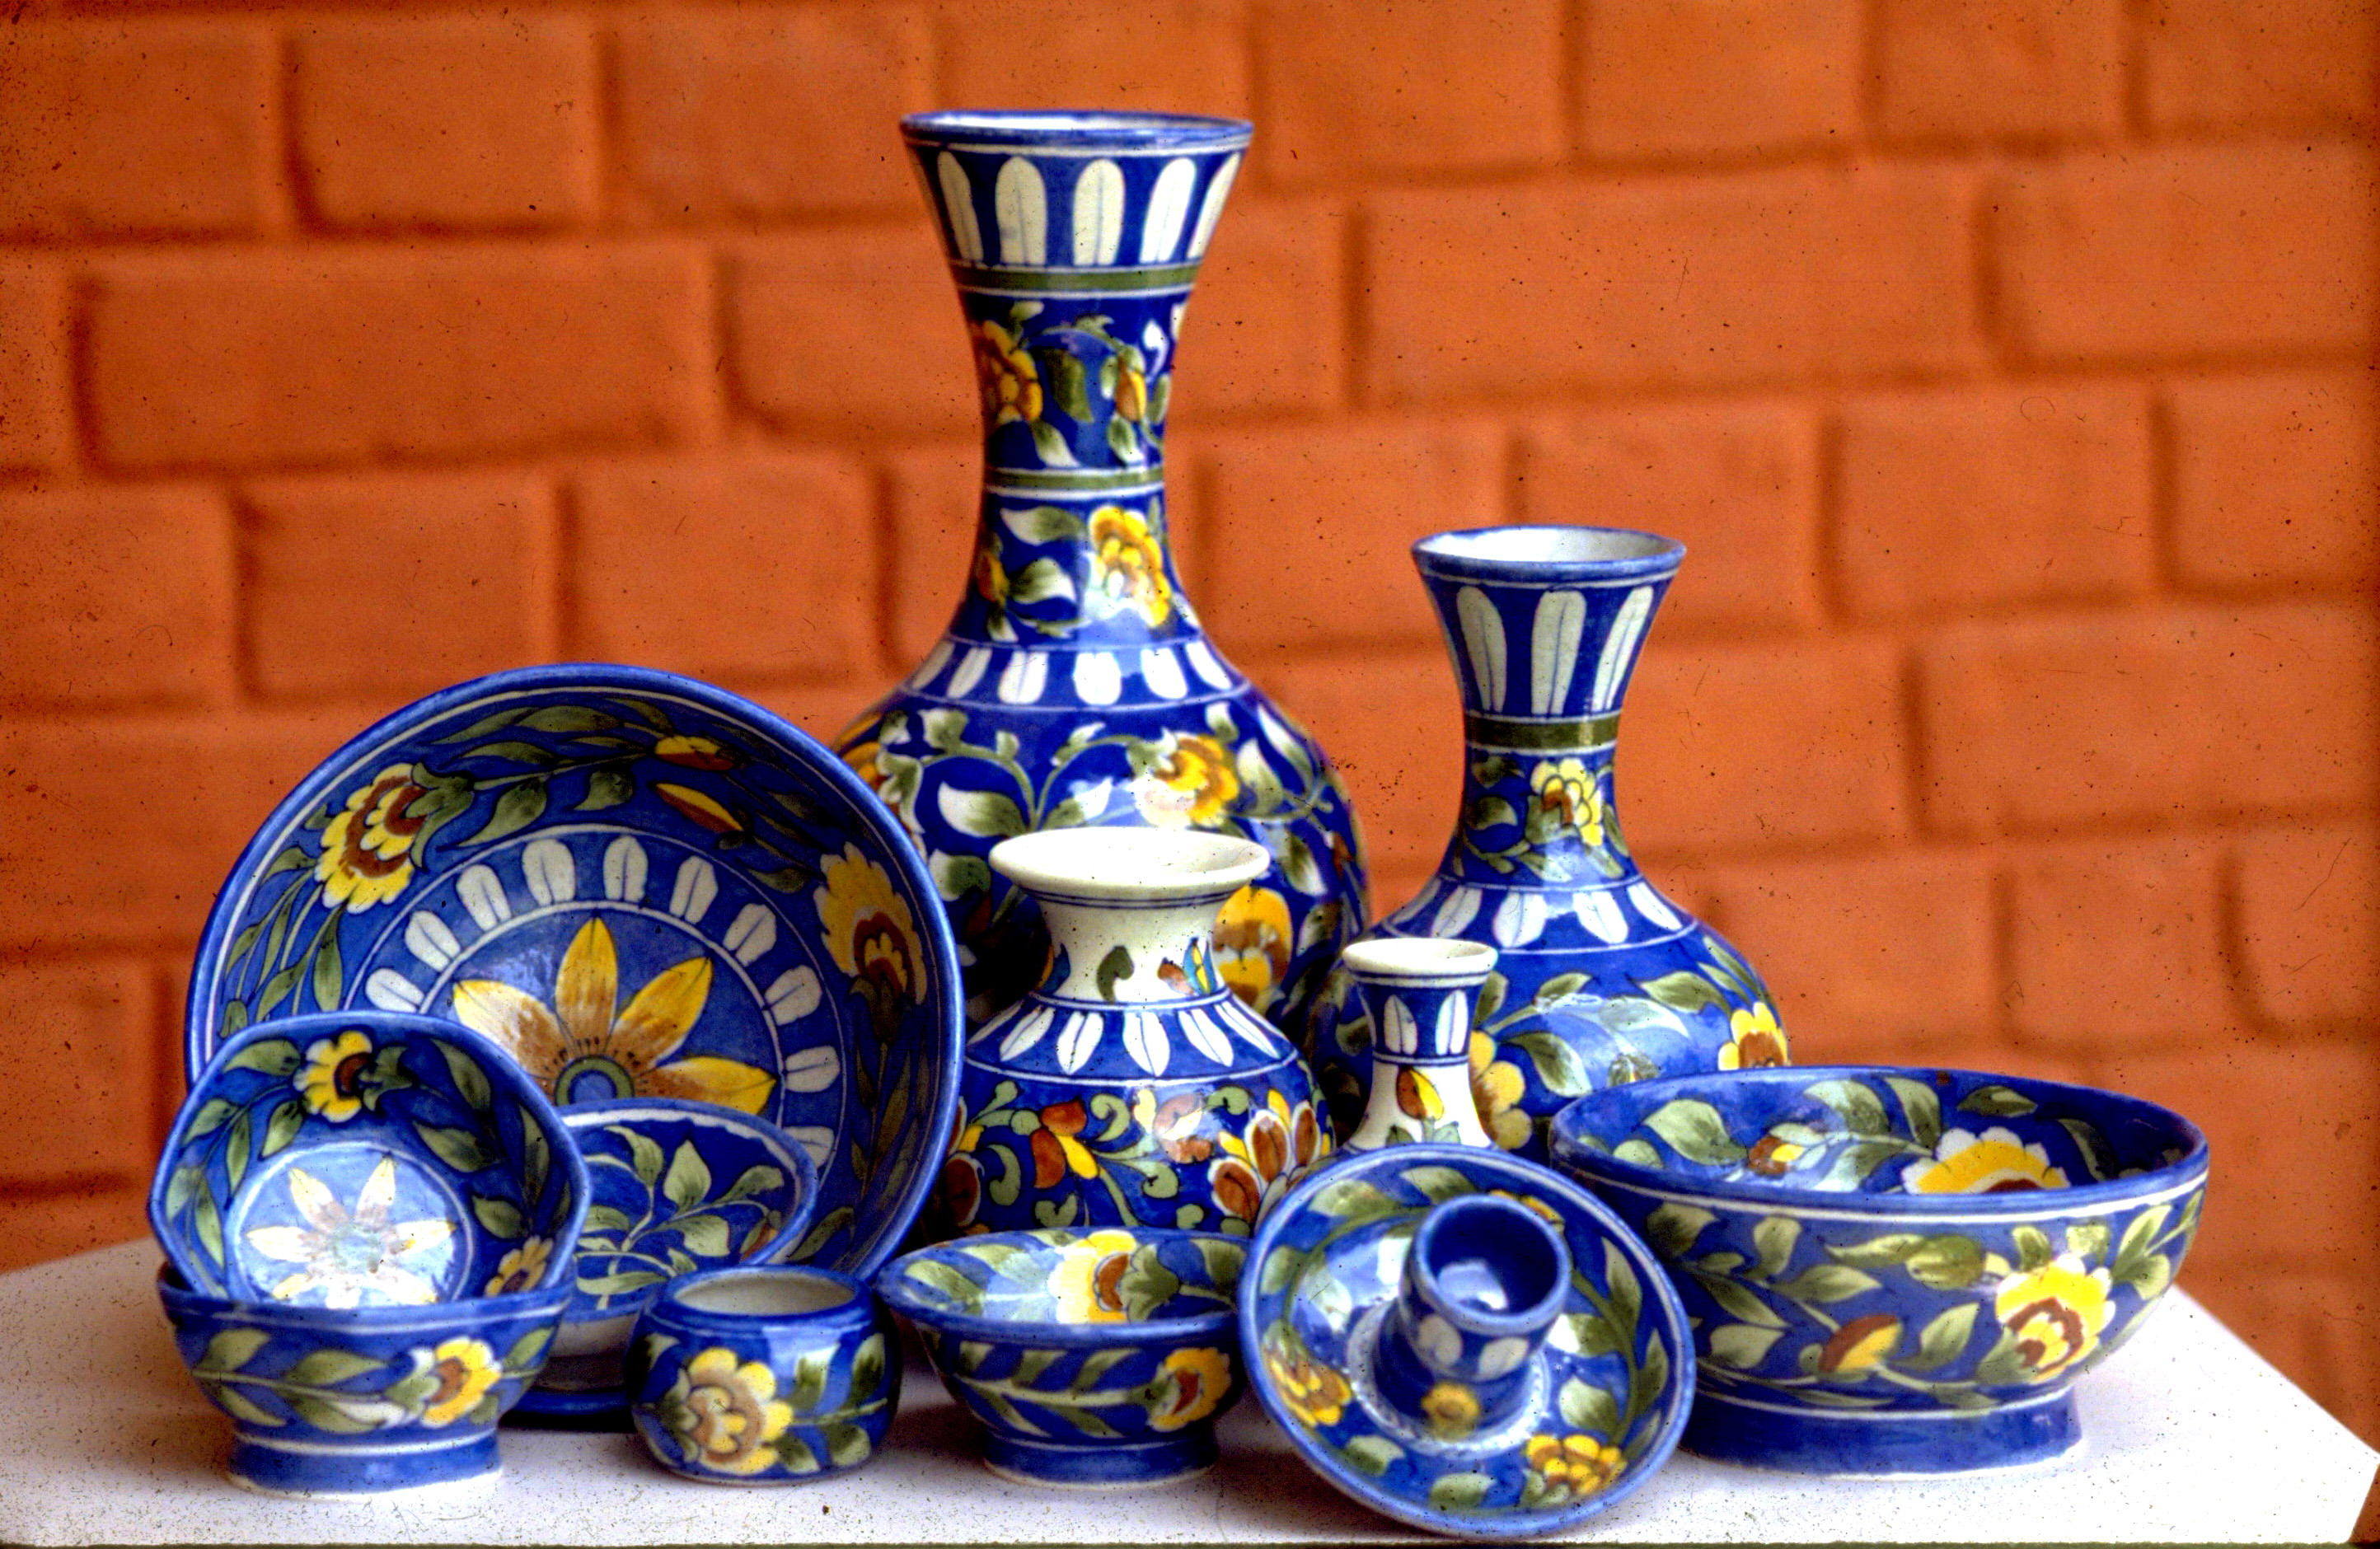 Decorating ideas for your sweet home swatz says for Decorating with blue and white pottery